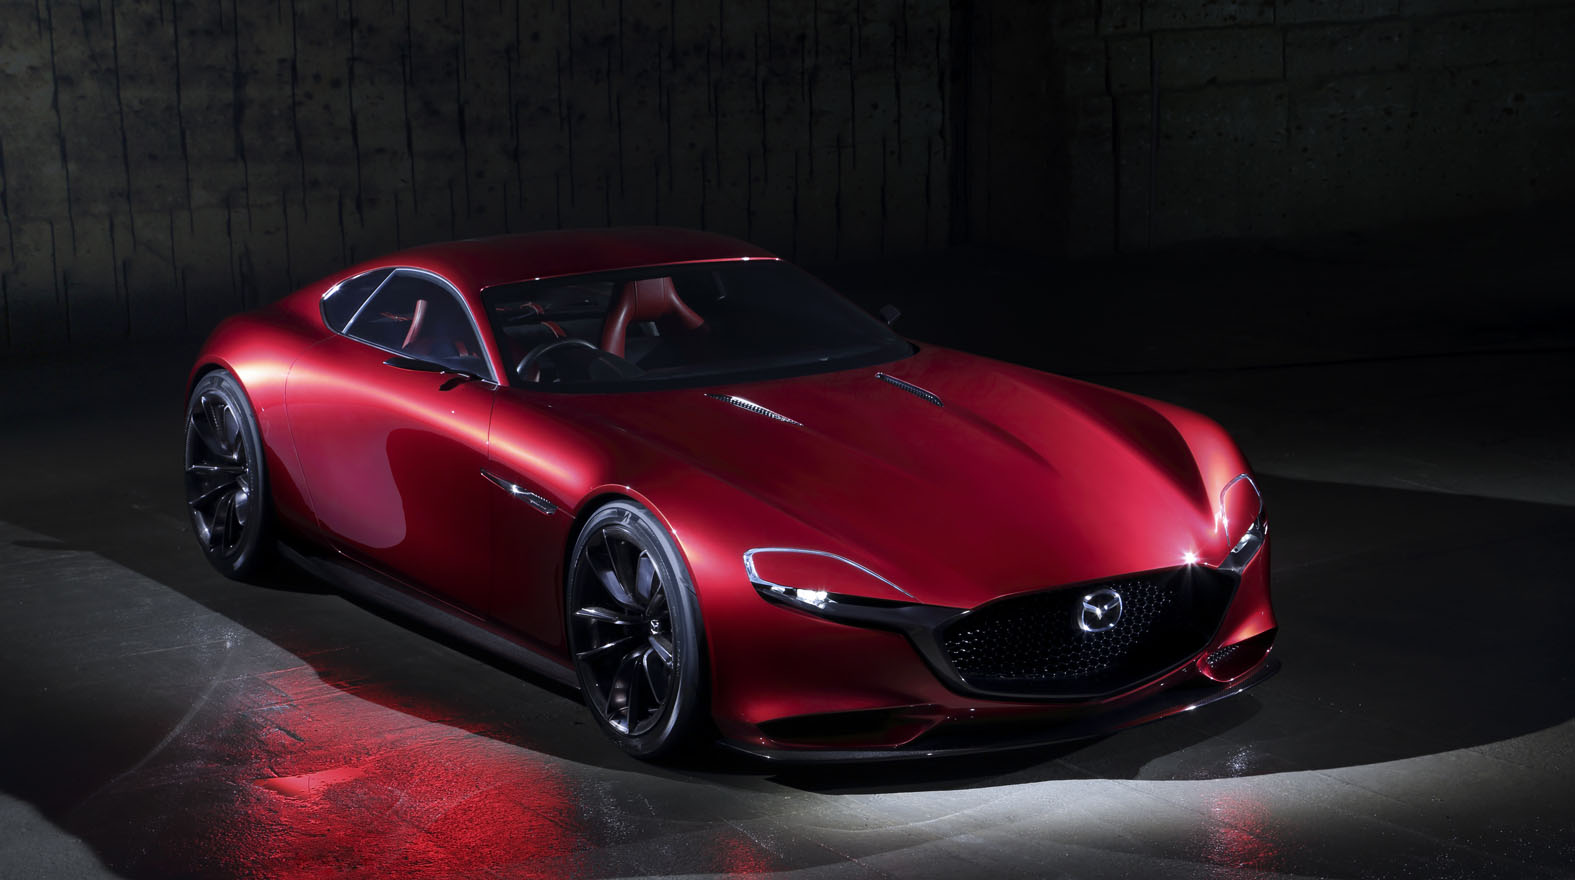 The successor to the Mazda RX-8 was unveiled at the Tokyo Motor Show 2015